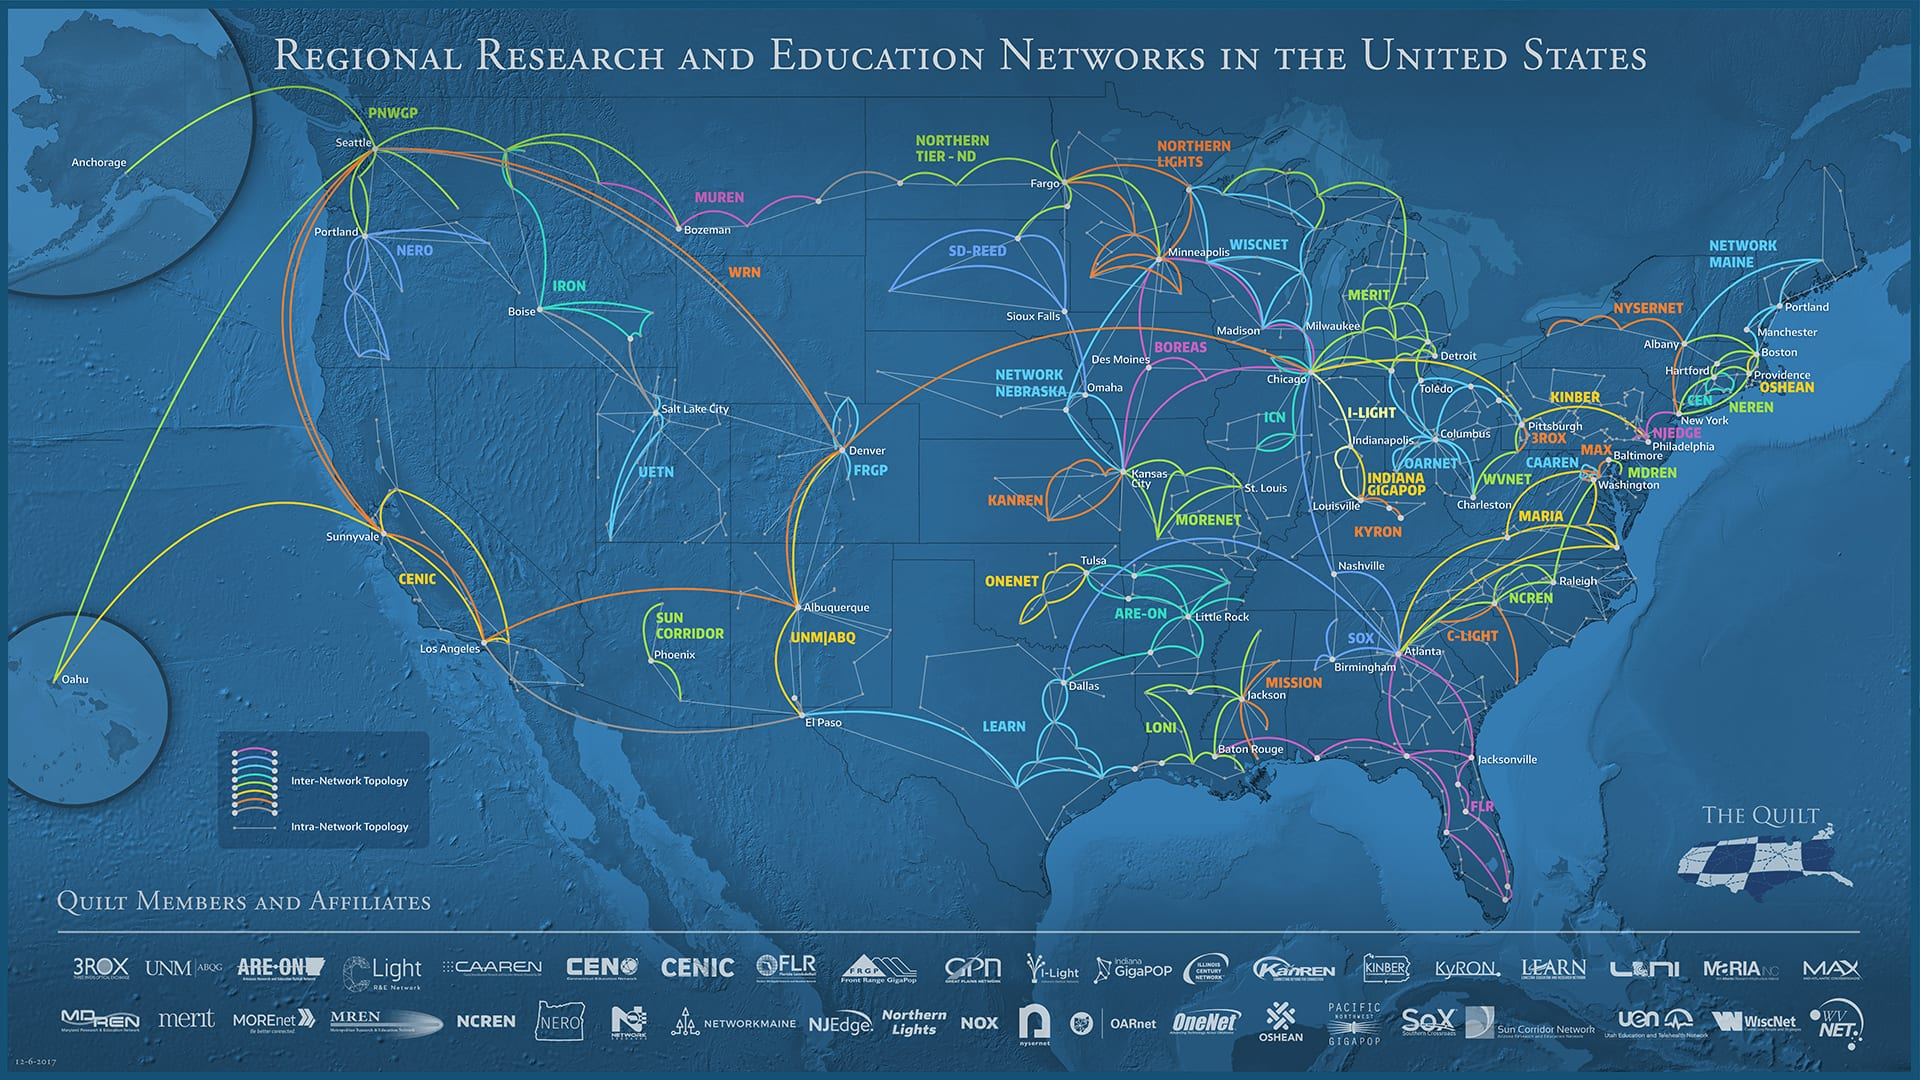 The Quilt Map of Regional Networks